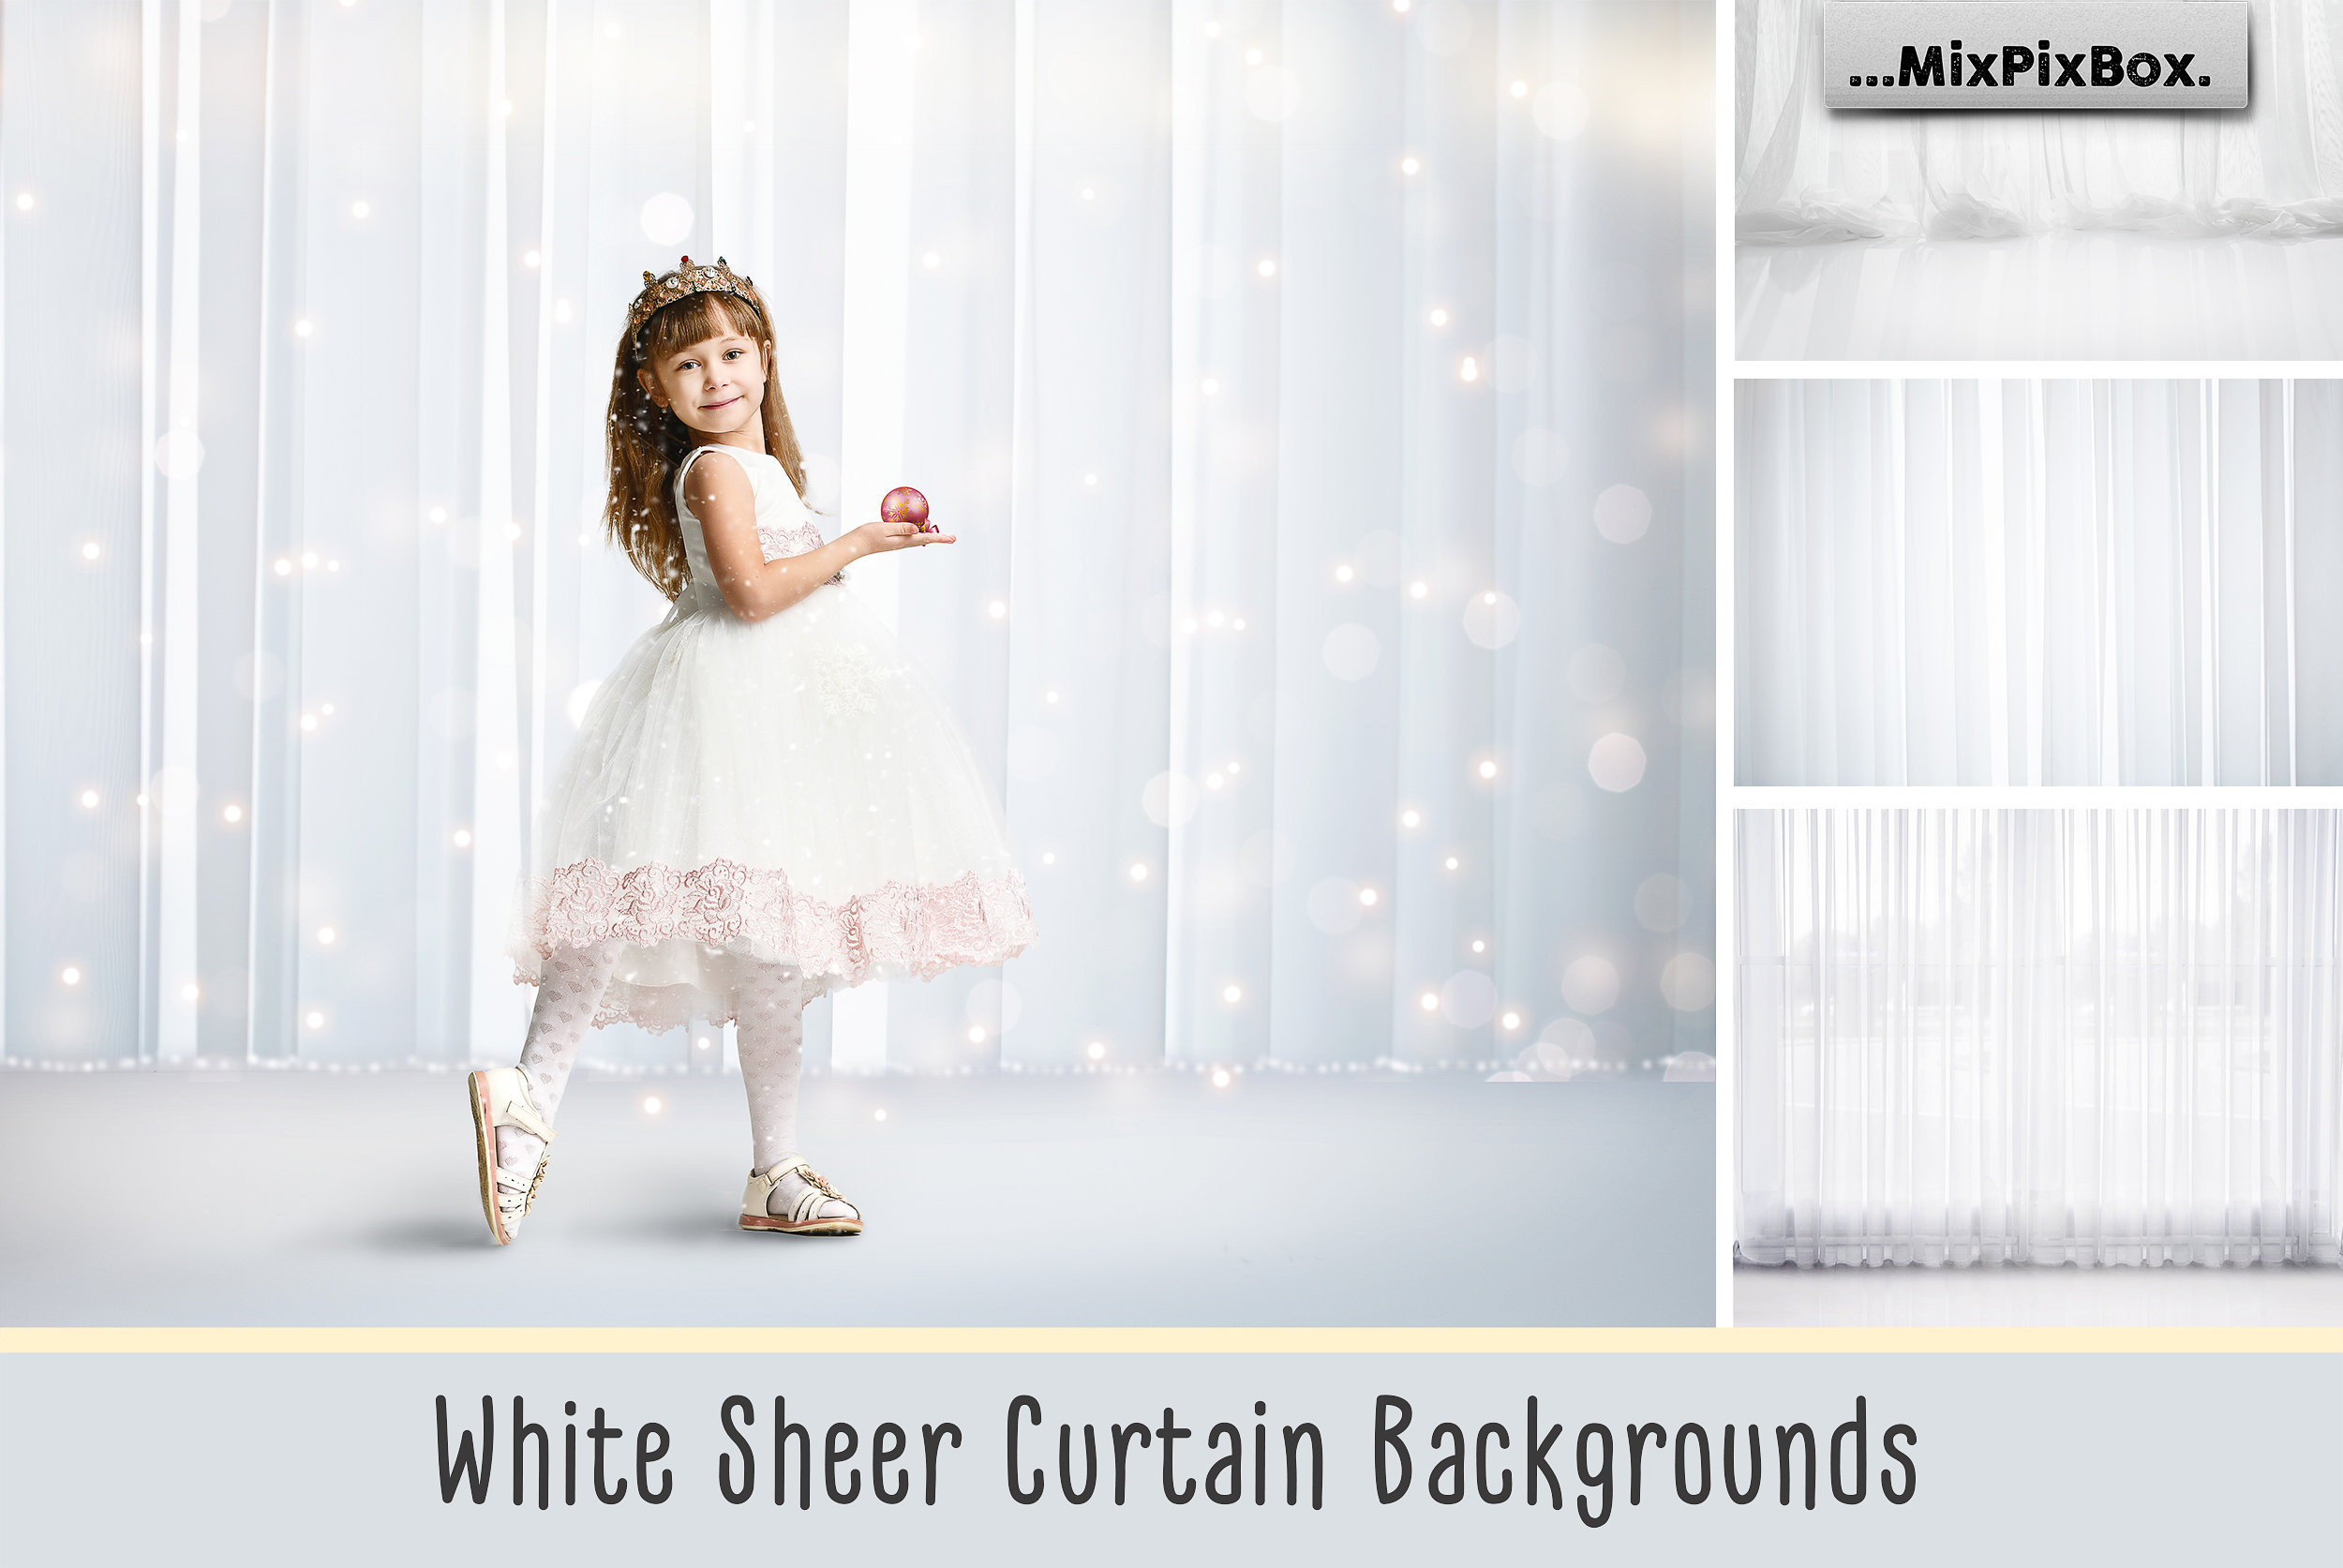 White Sheer Curtain Backgrounds example image 1